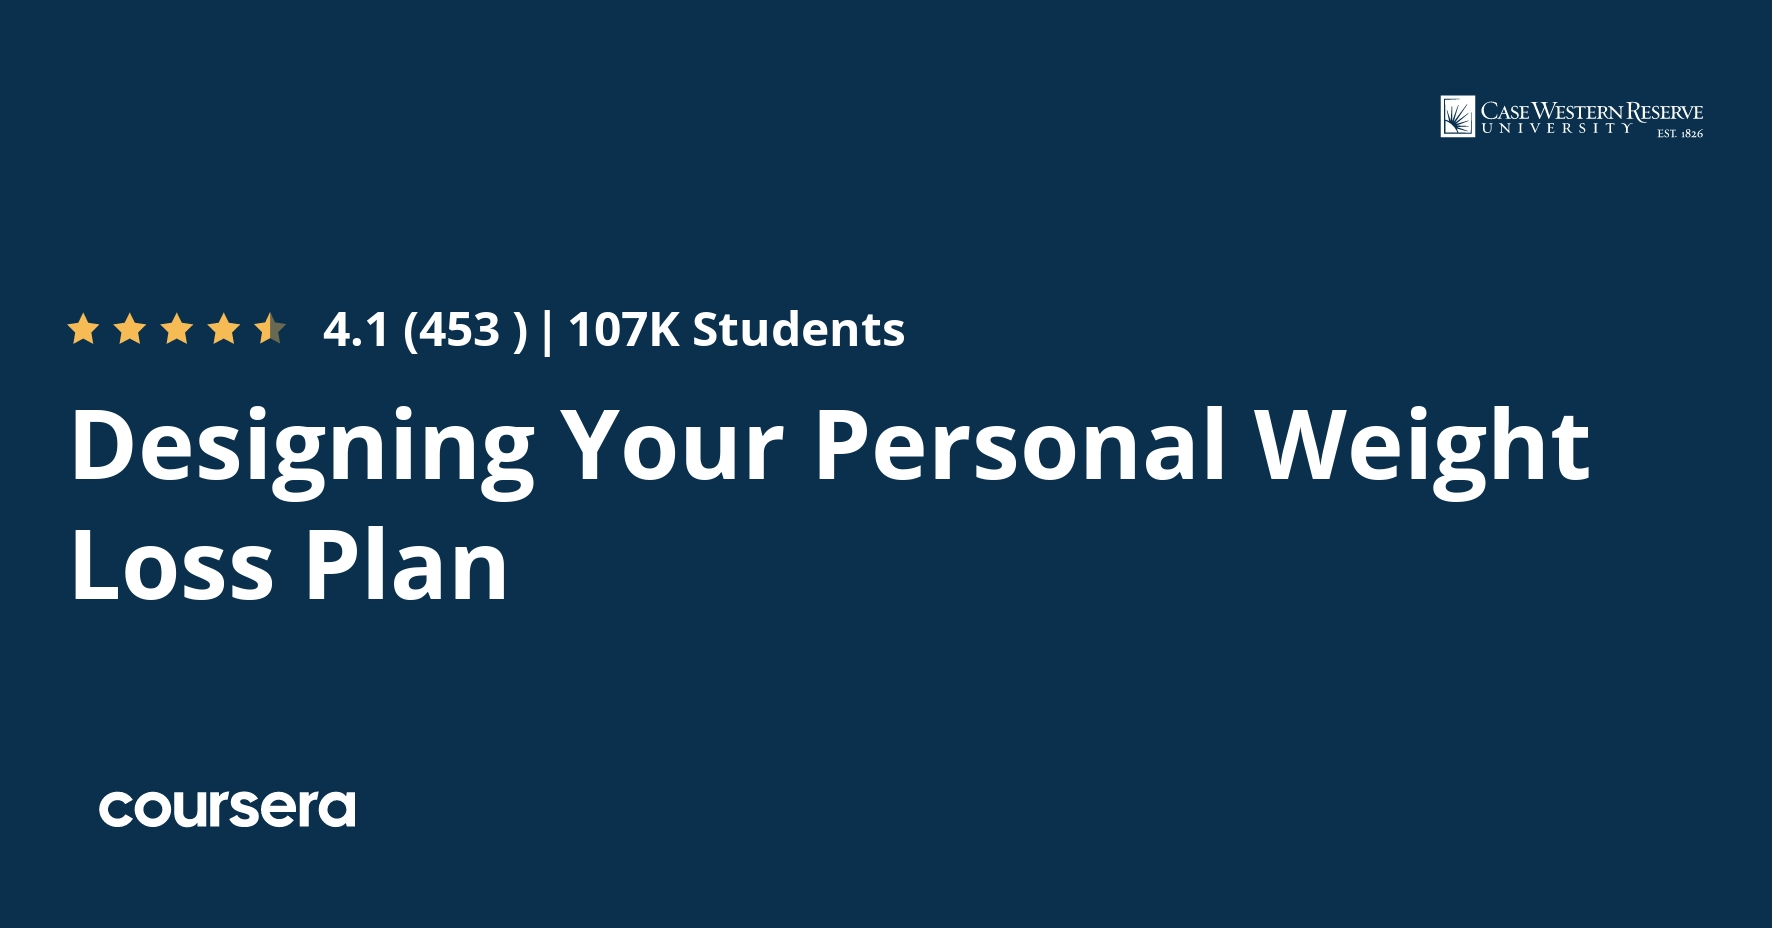 Designing Your Personal Weight Loss Plan